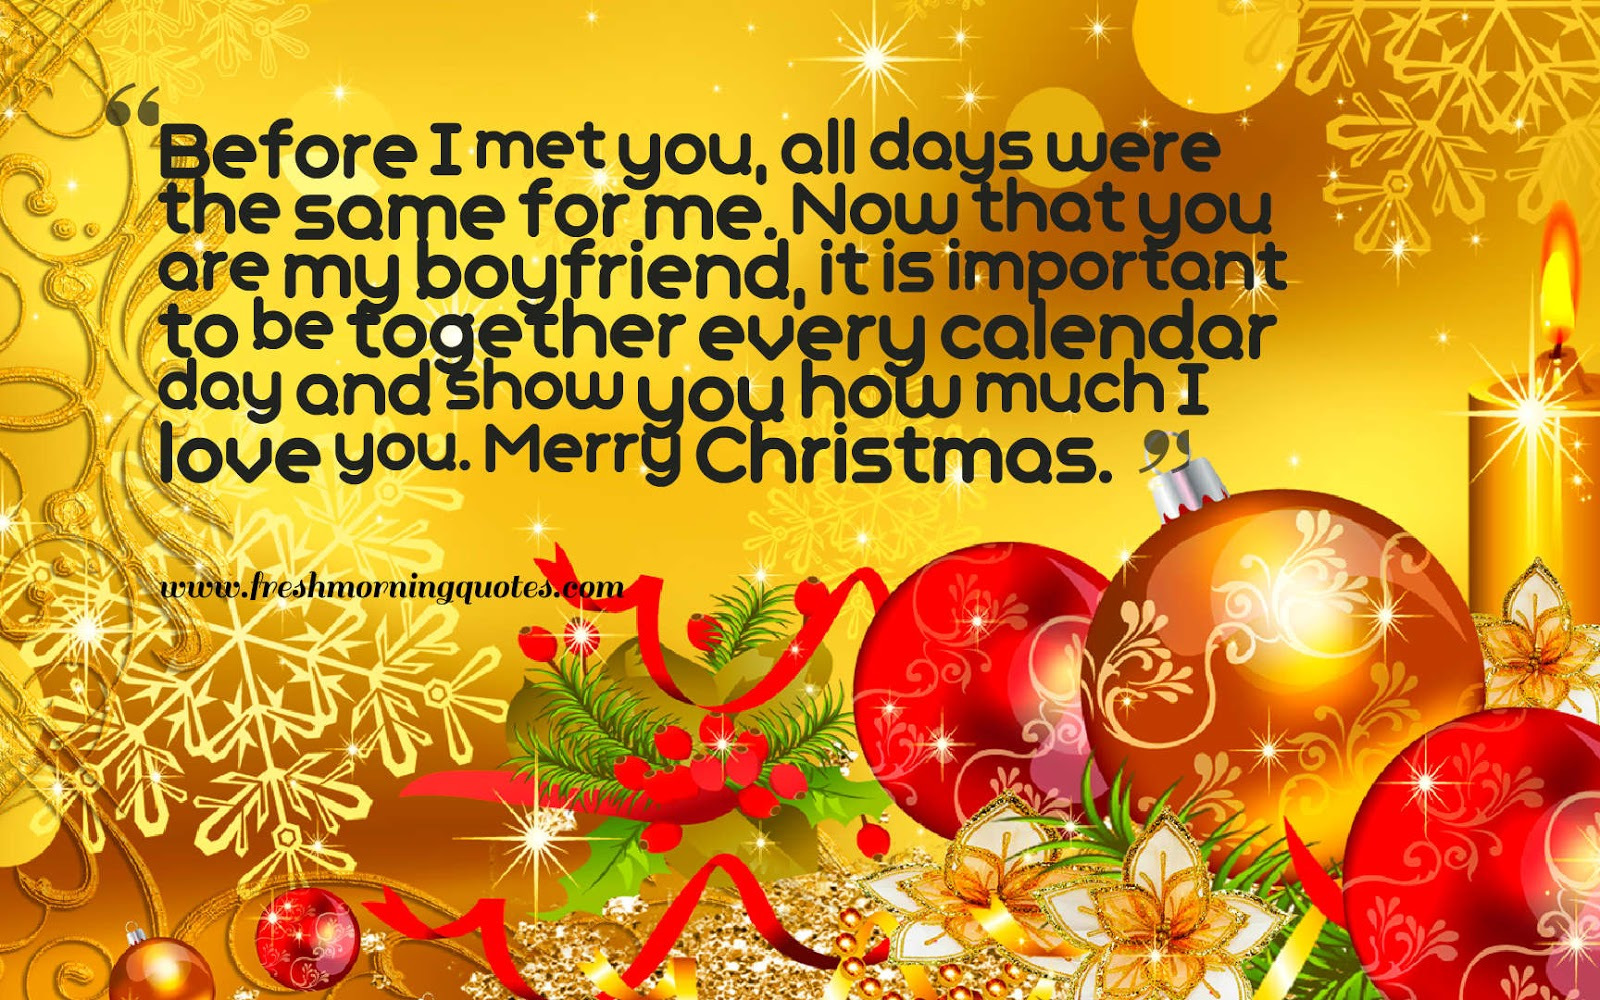 Heart Touching Christmas Love Messages for boyfriend